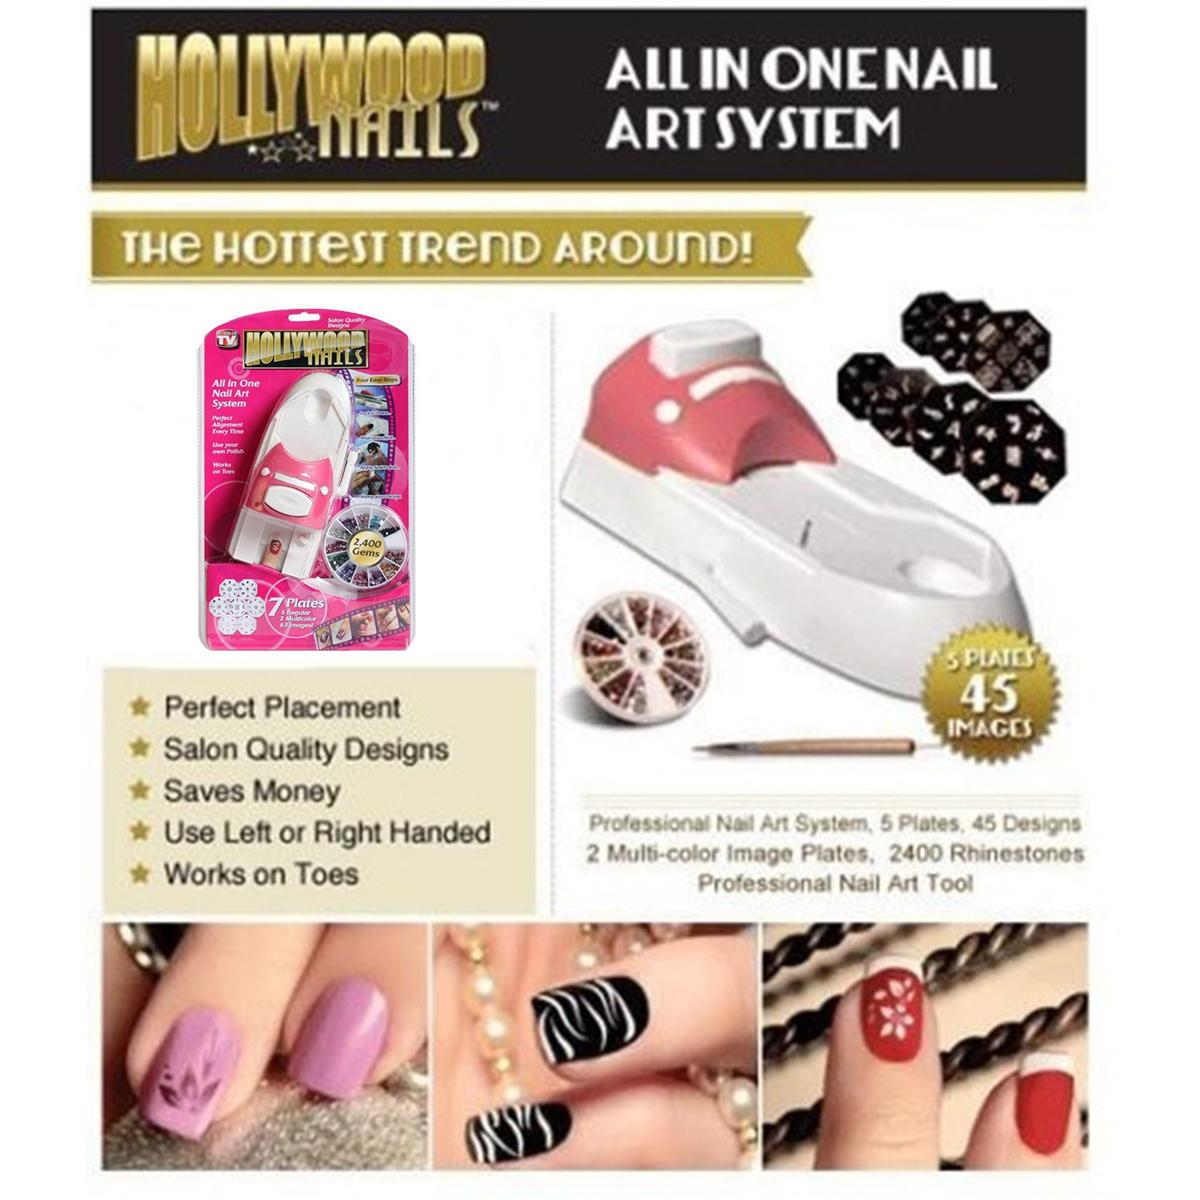 New Fashionable Hollywood Nails All In One Nail Art System Kit